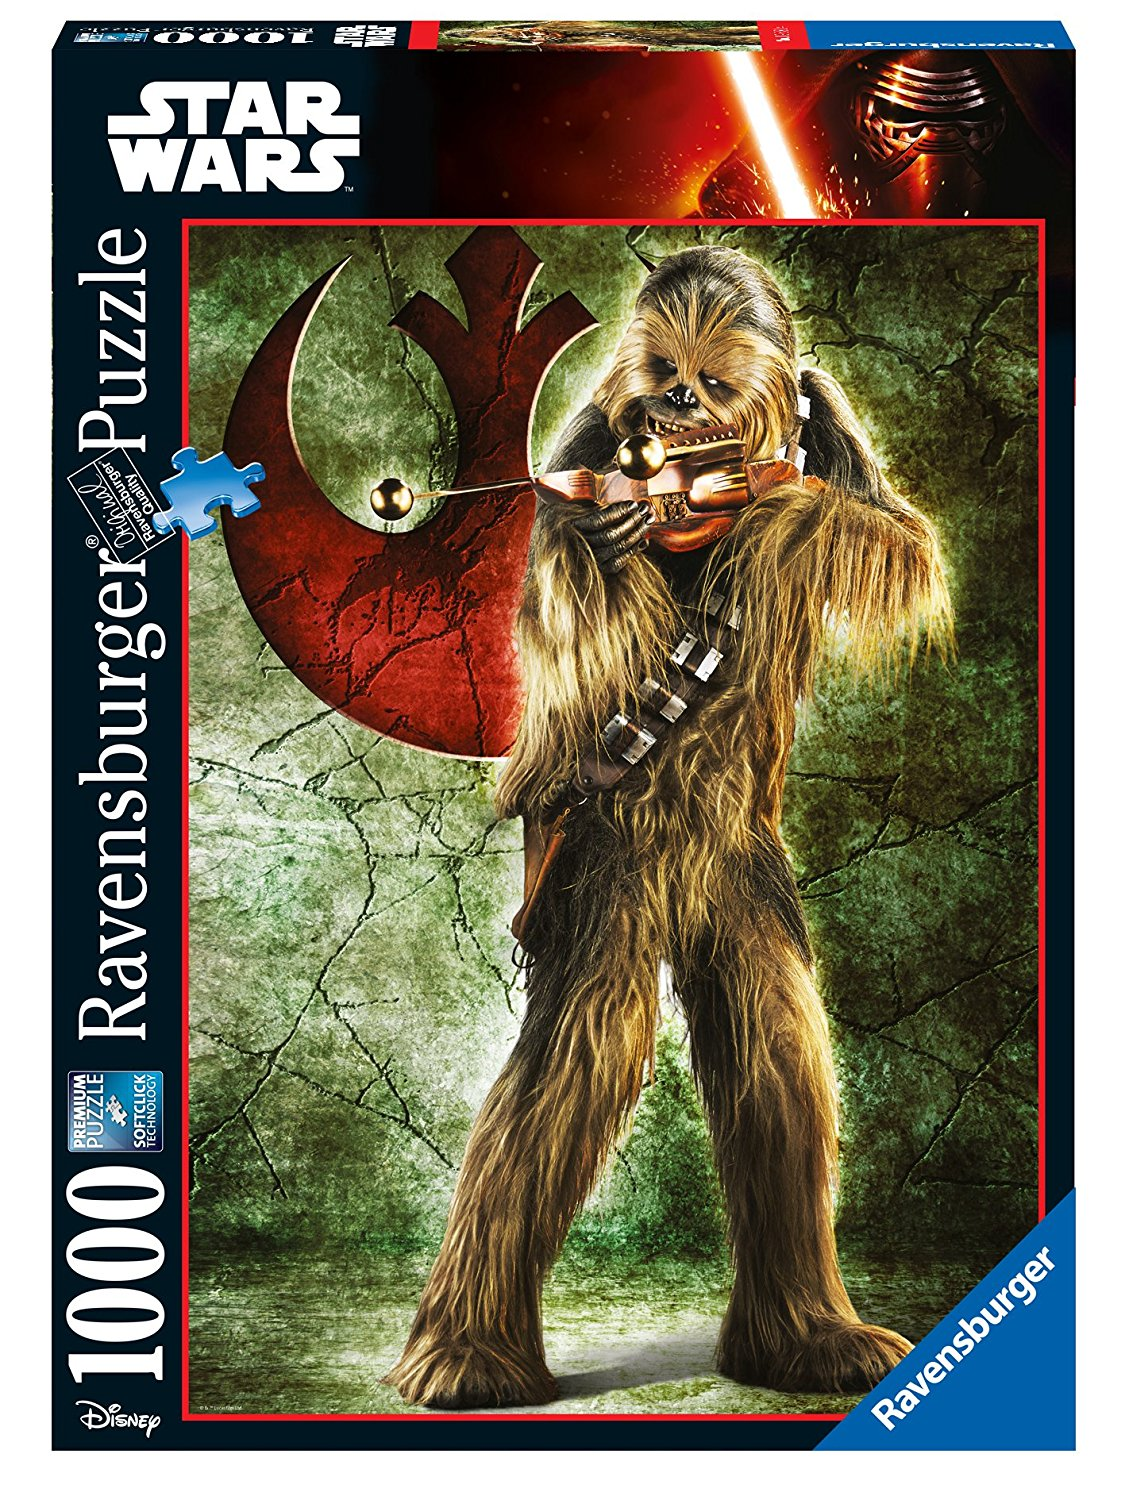 puzzle star wars ravensburger 19681 1000 pieces jigsaw puzzles super heroes jigsaw puzzle. Black Bedroom Furniture Sets. Home Design Ideas